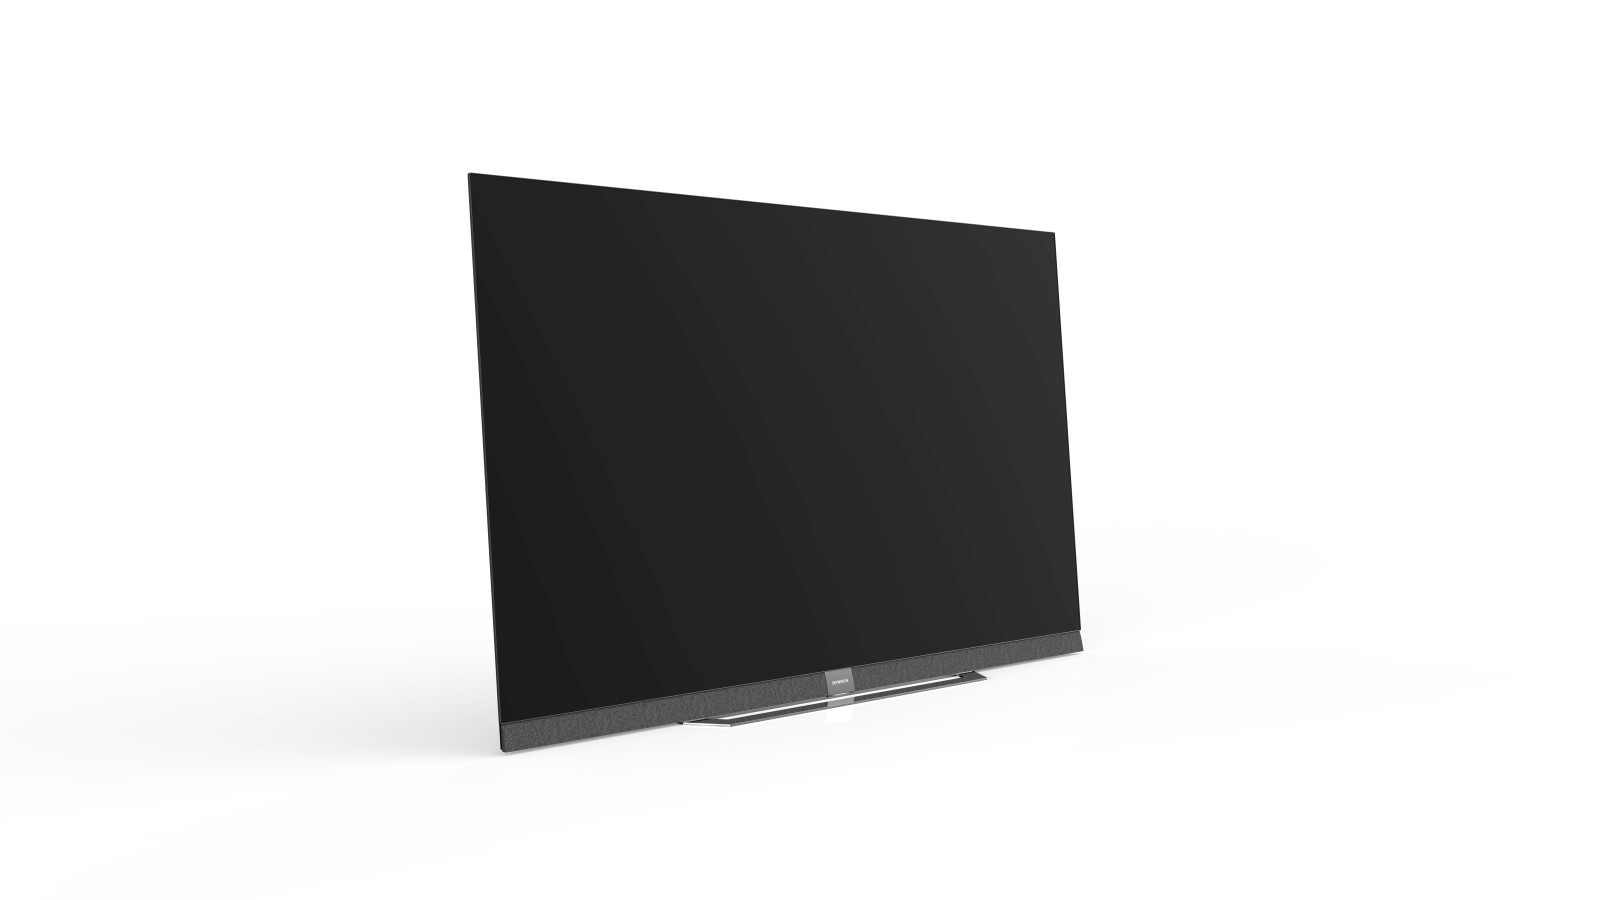 First look: Skyworth's 65-inch Android-fueled OLED AI TV